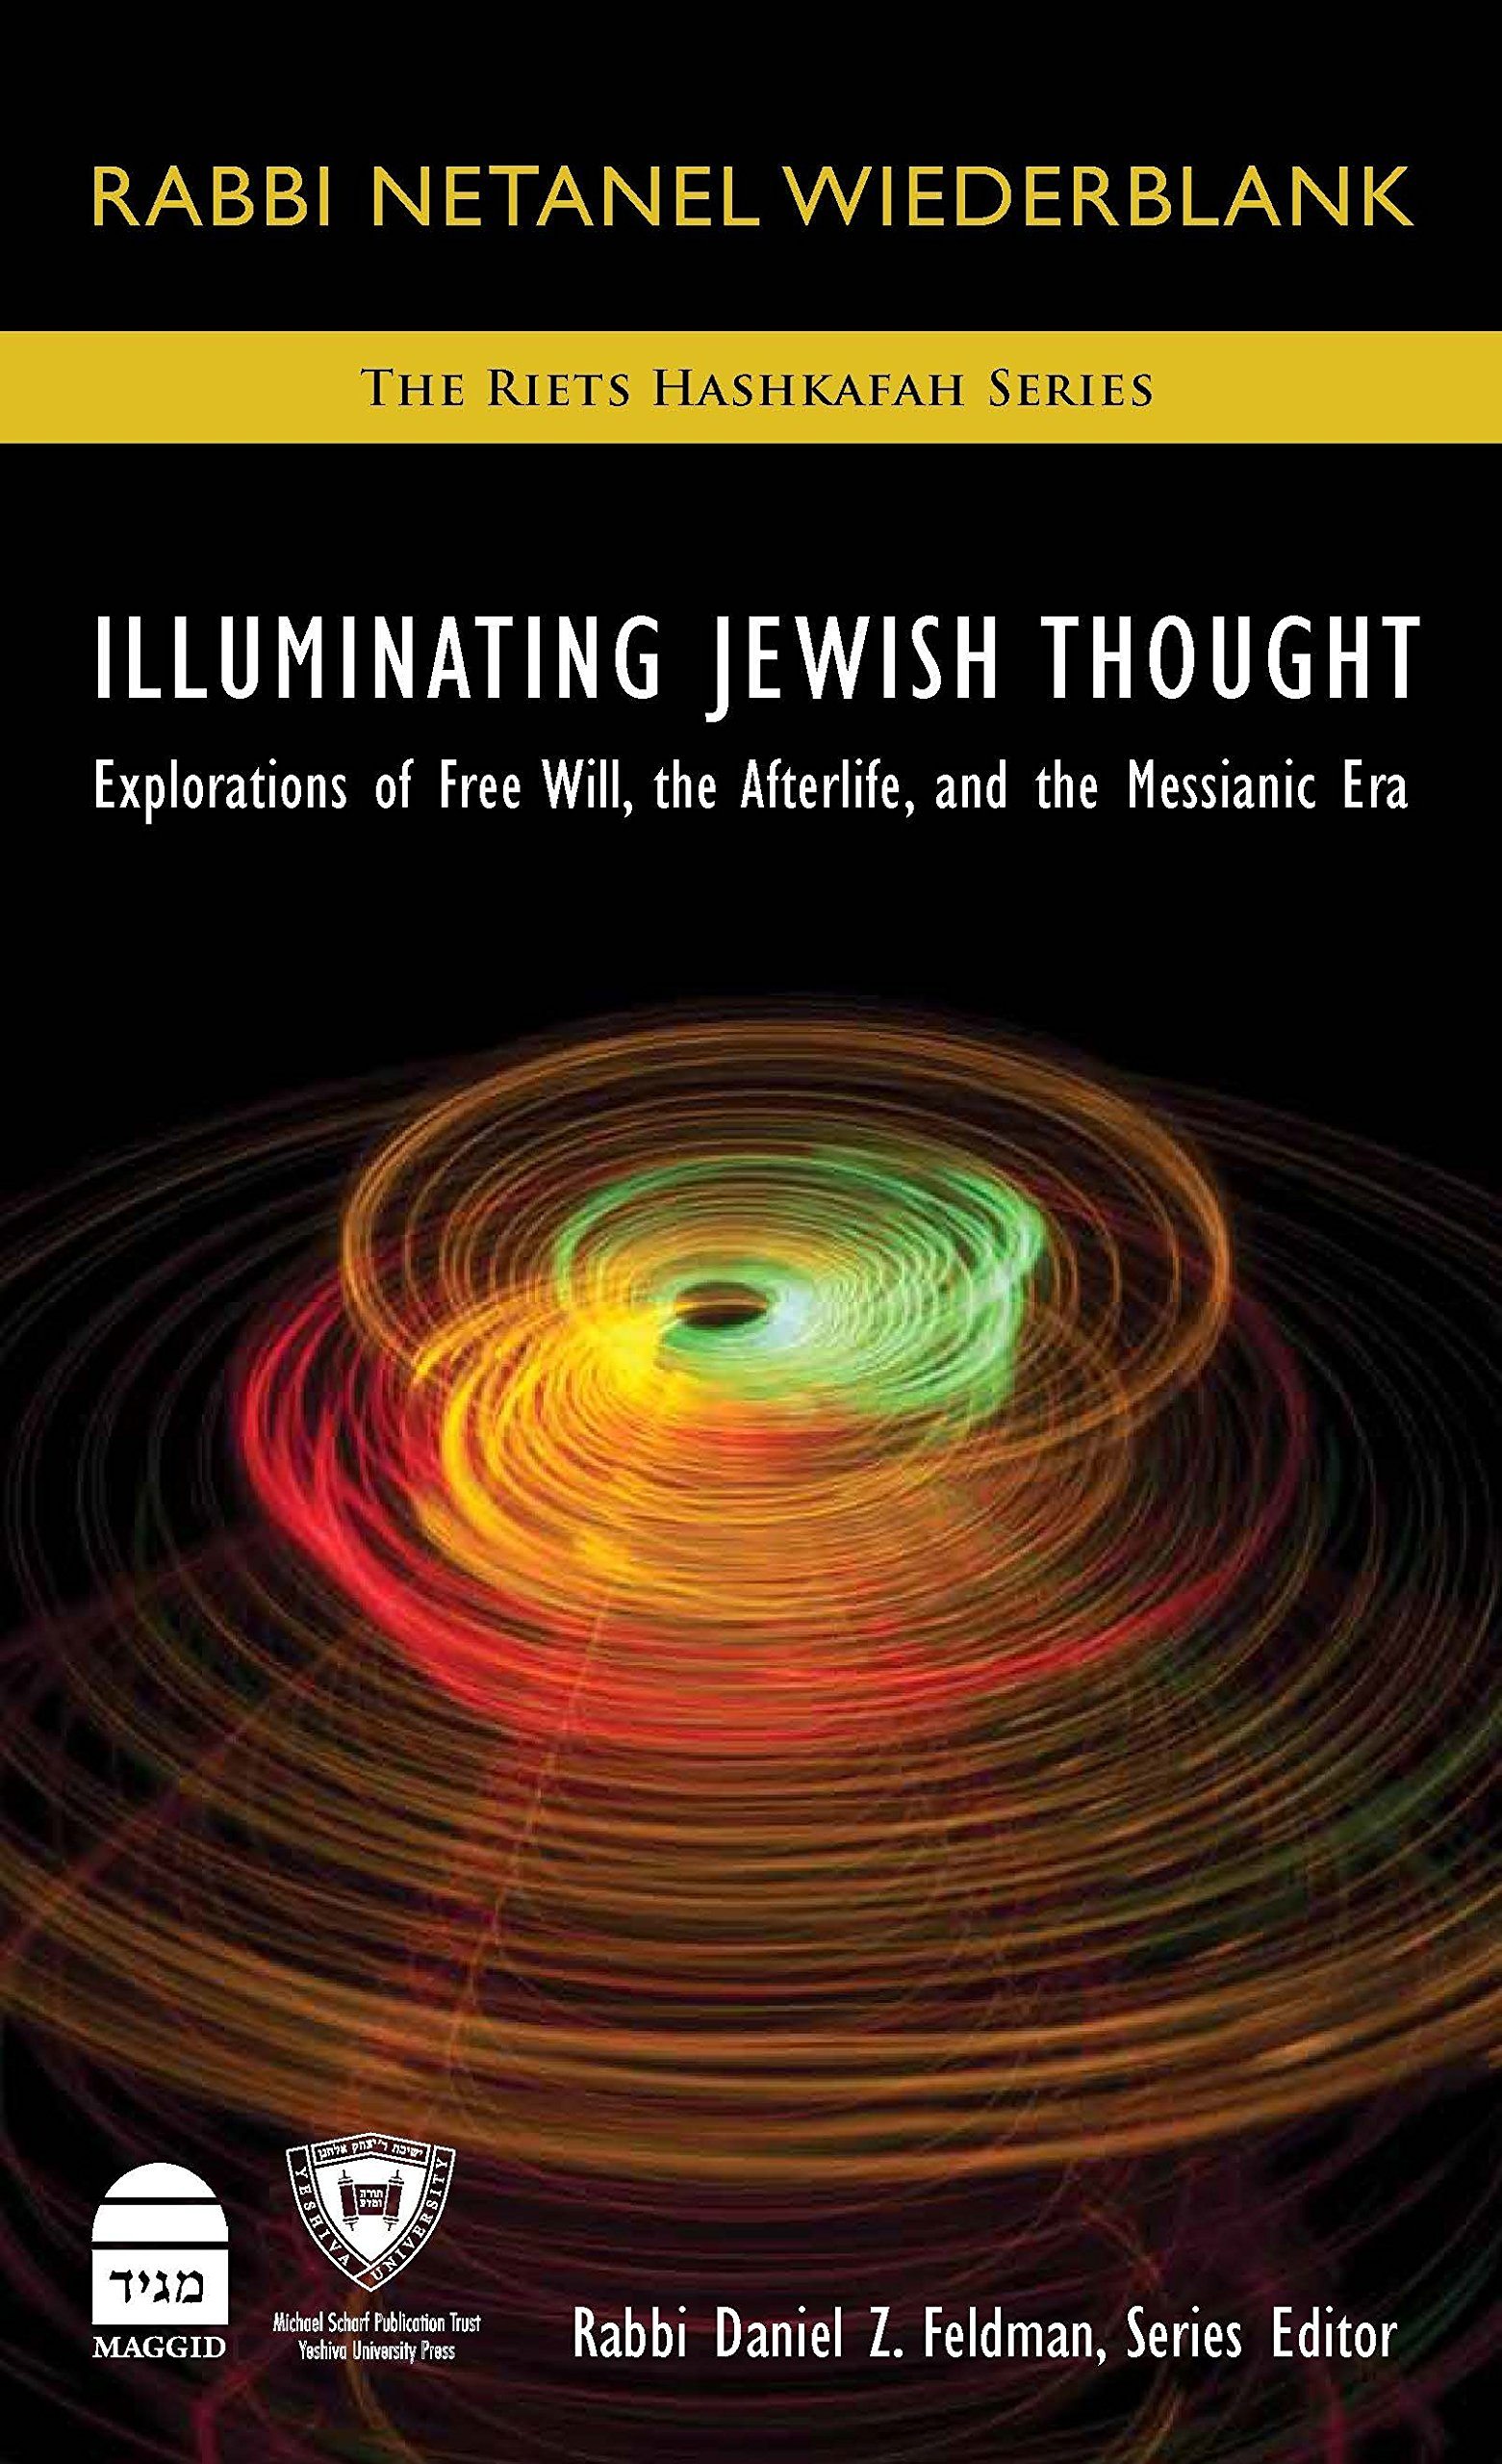 Illuminating Jewish Thought: Explorations of Free Will the Afterlife and the Messianic Era